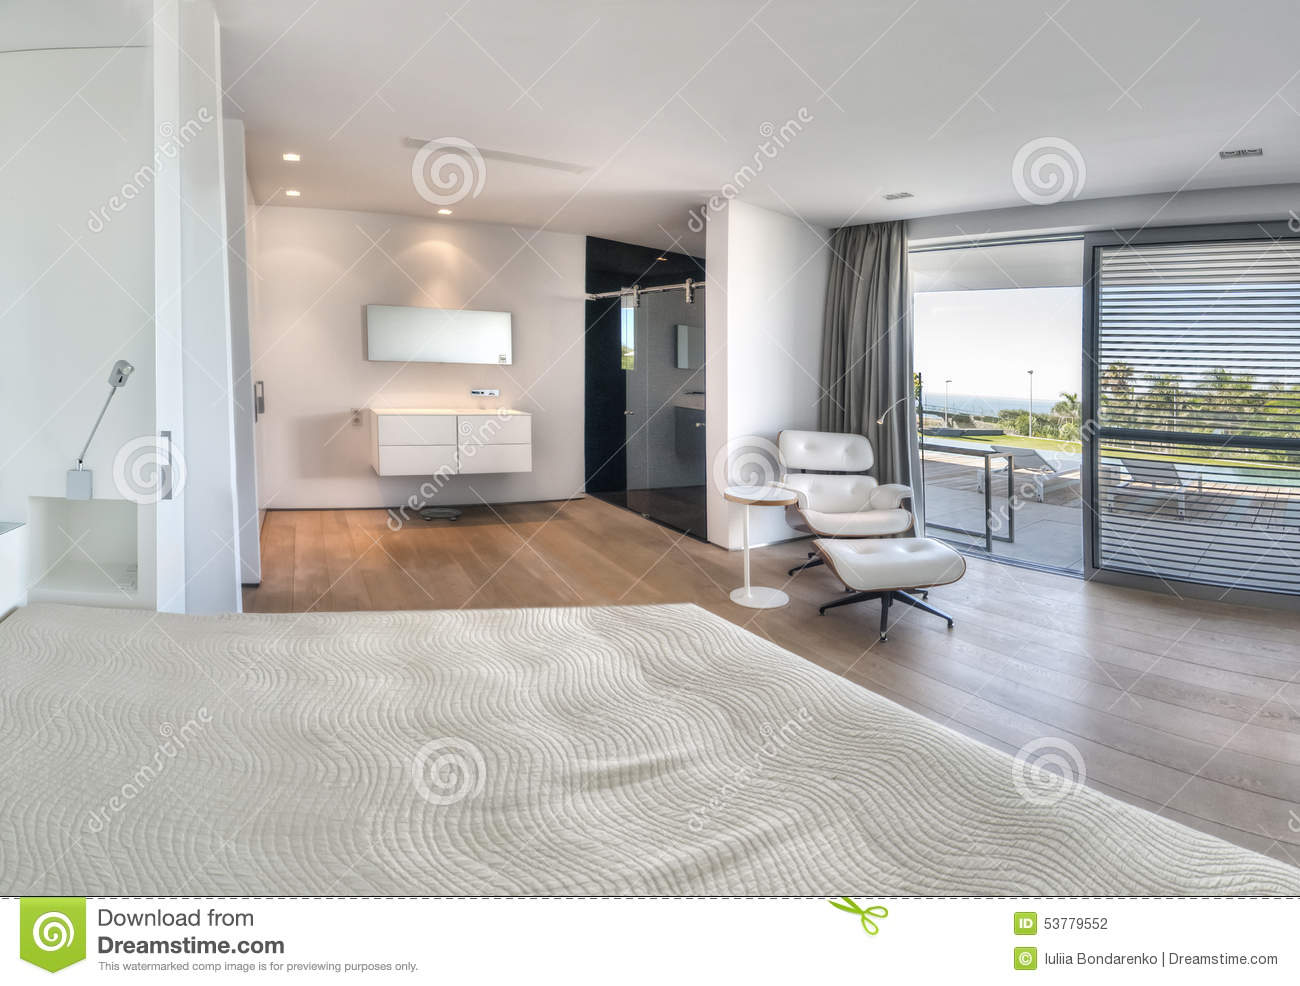 Moderne witte slaapkamer met badkamers stock foto for Foto chambre a coucher